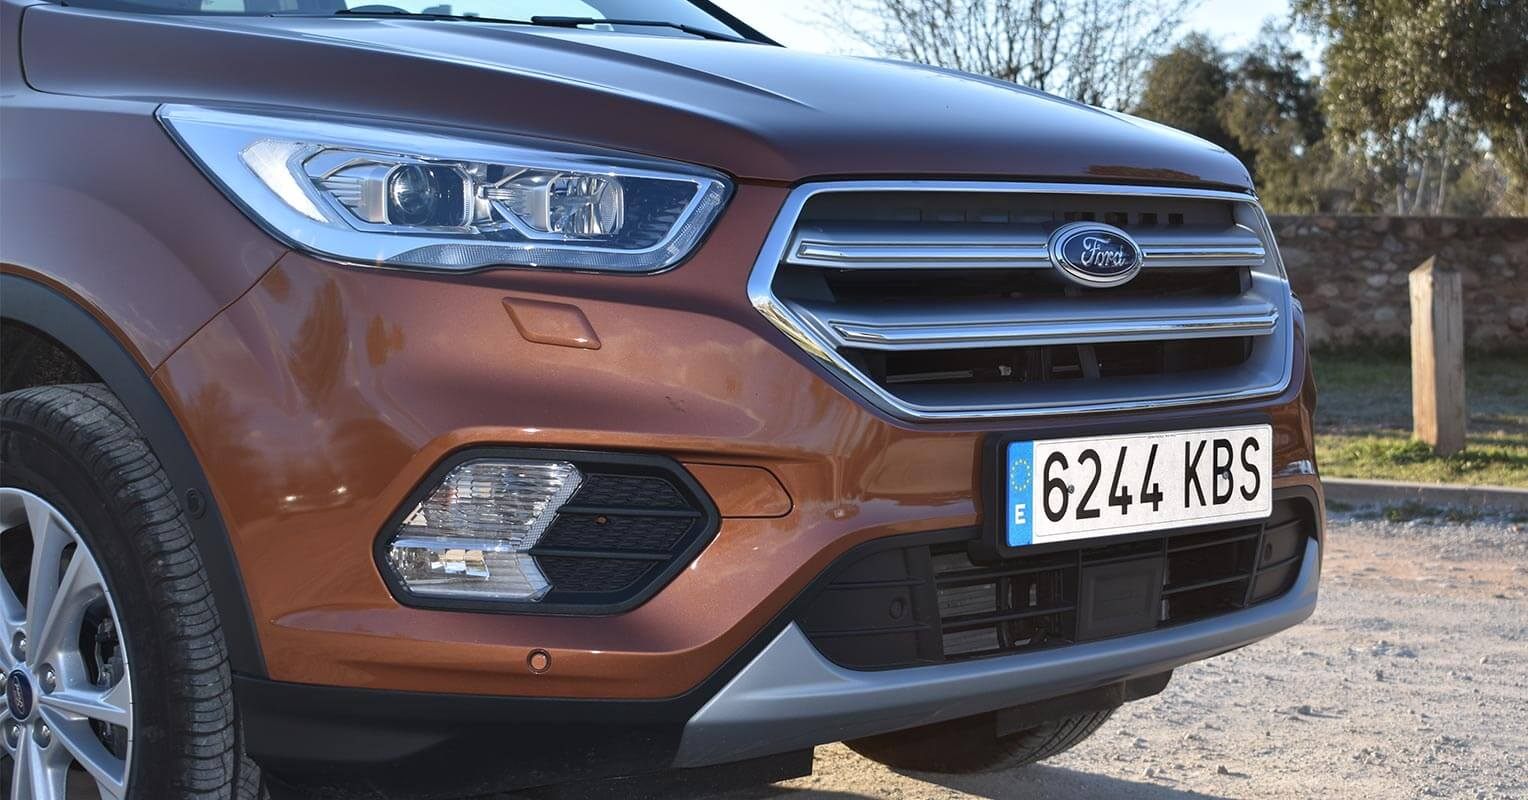 Parrilla frontal del Ford Kuga 2018